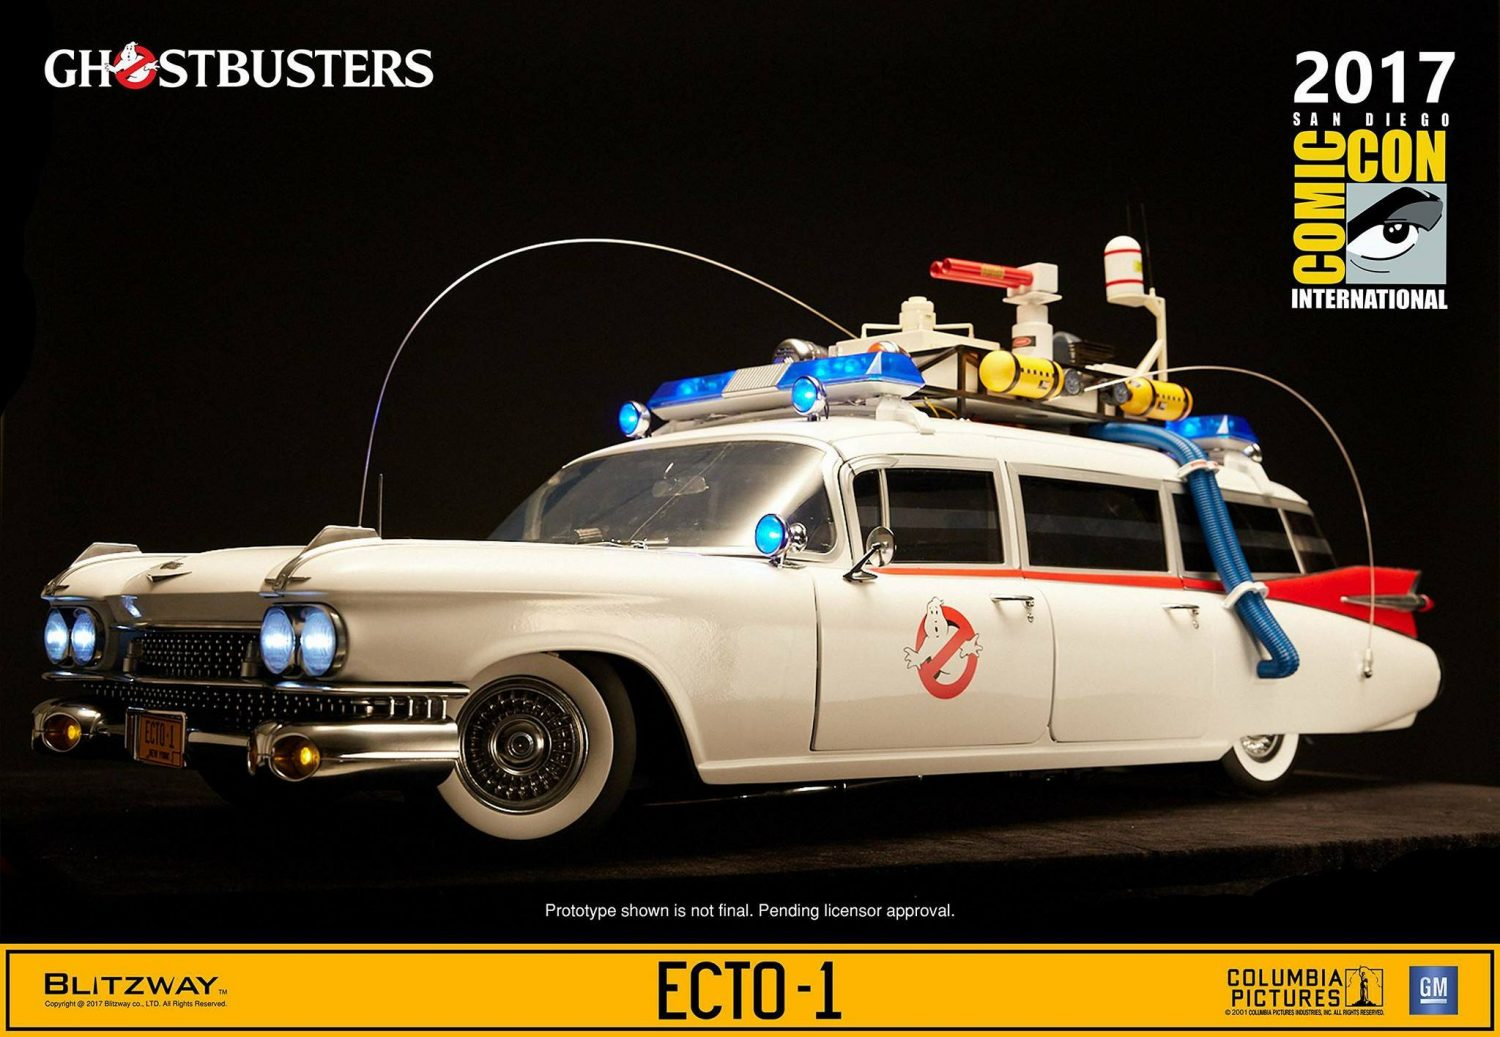 Blitzway Ghostbusters Ecto-1 Sixth Scale Vehicle Official Product Images